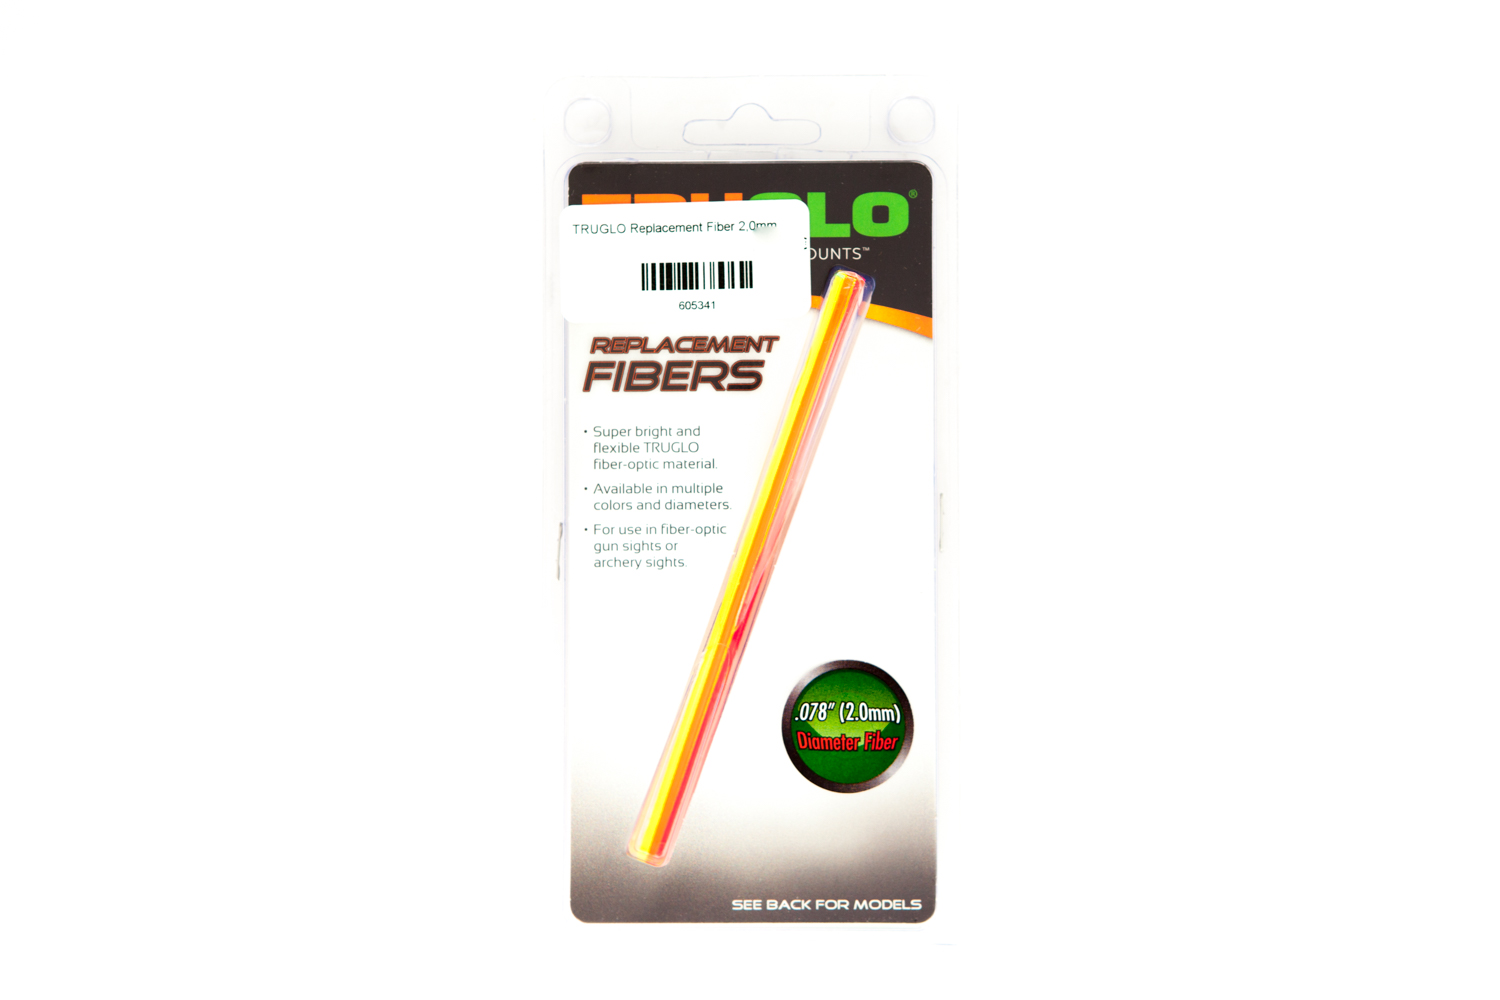 TRUGLO Replacement Fiber 2,0mm